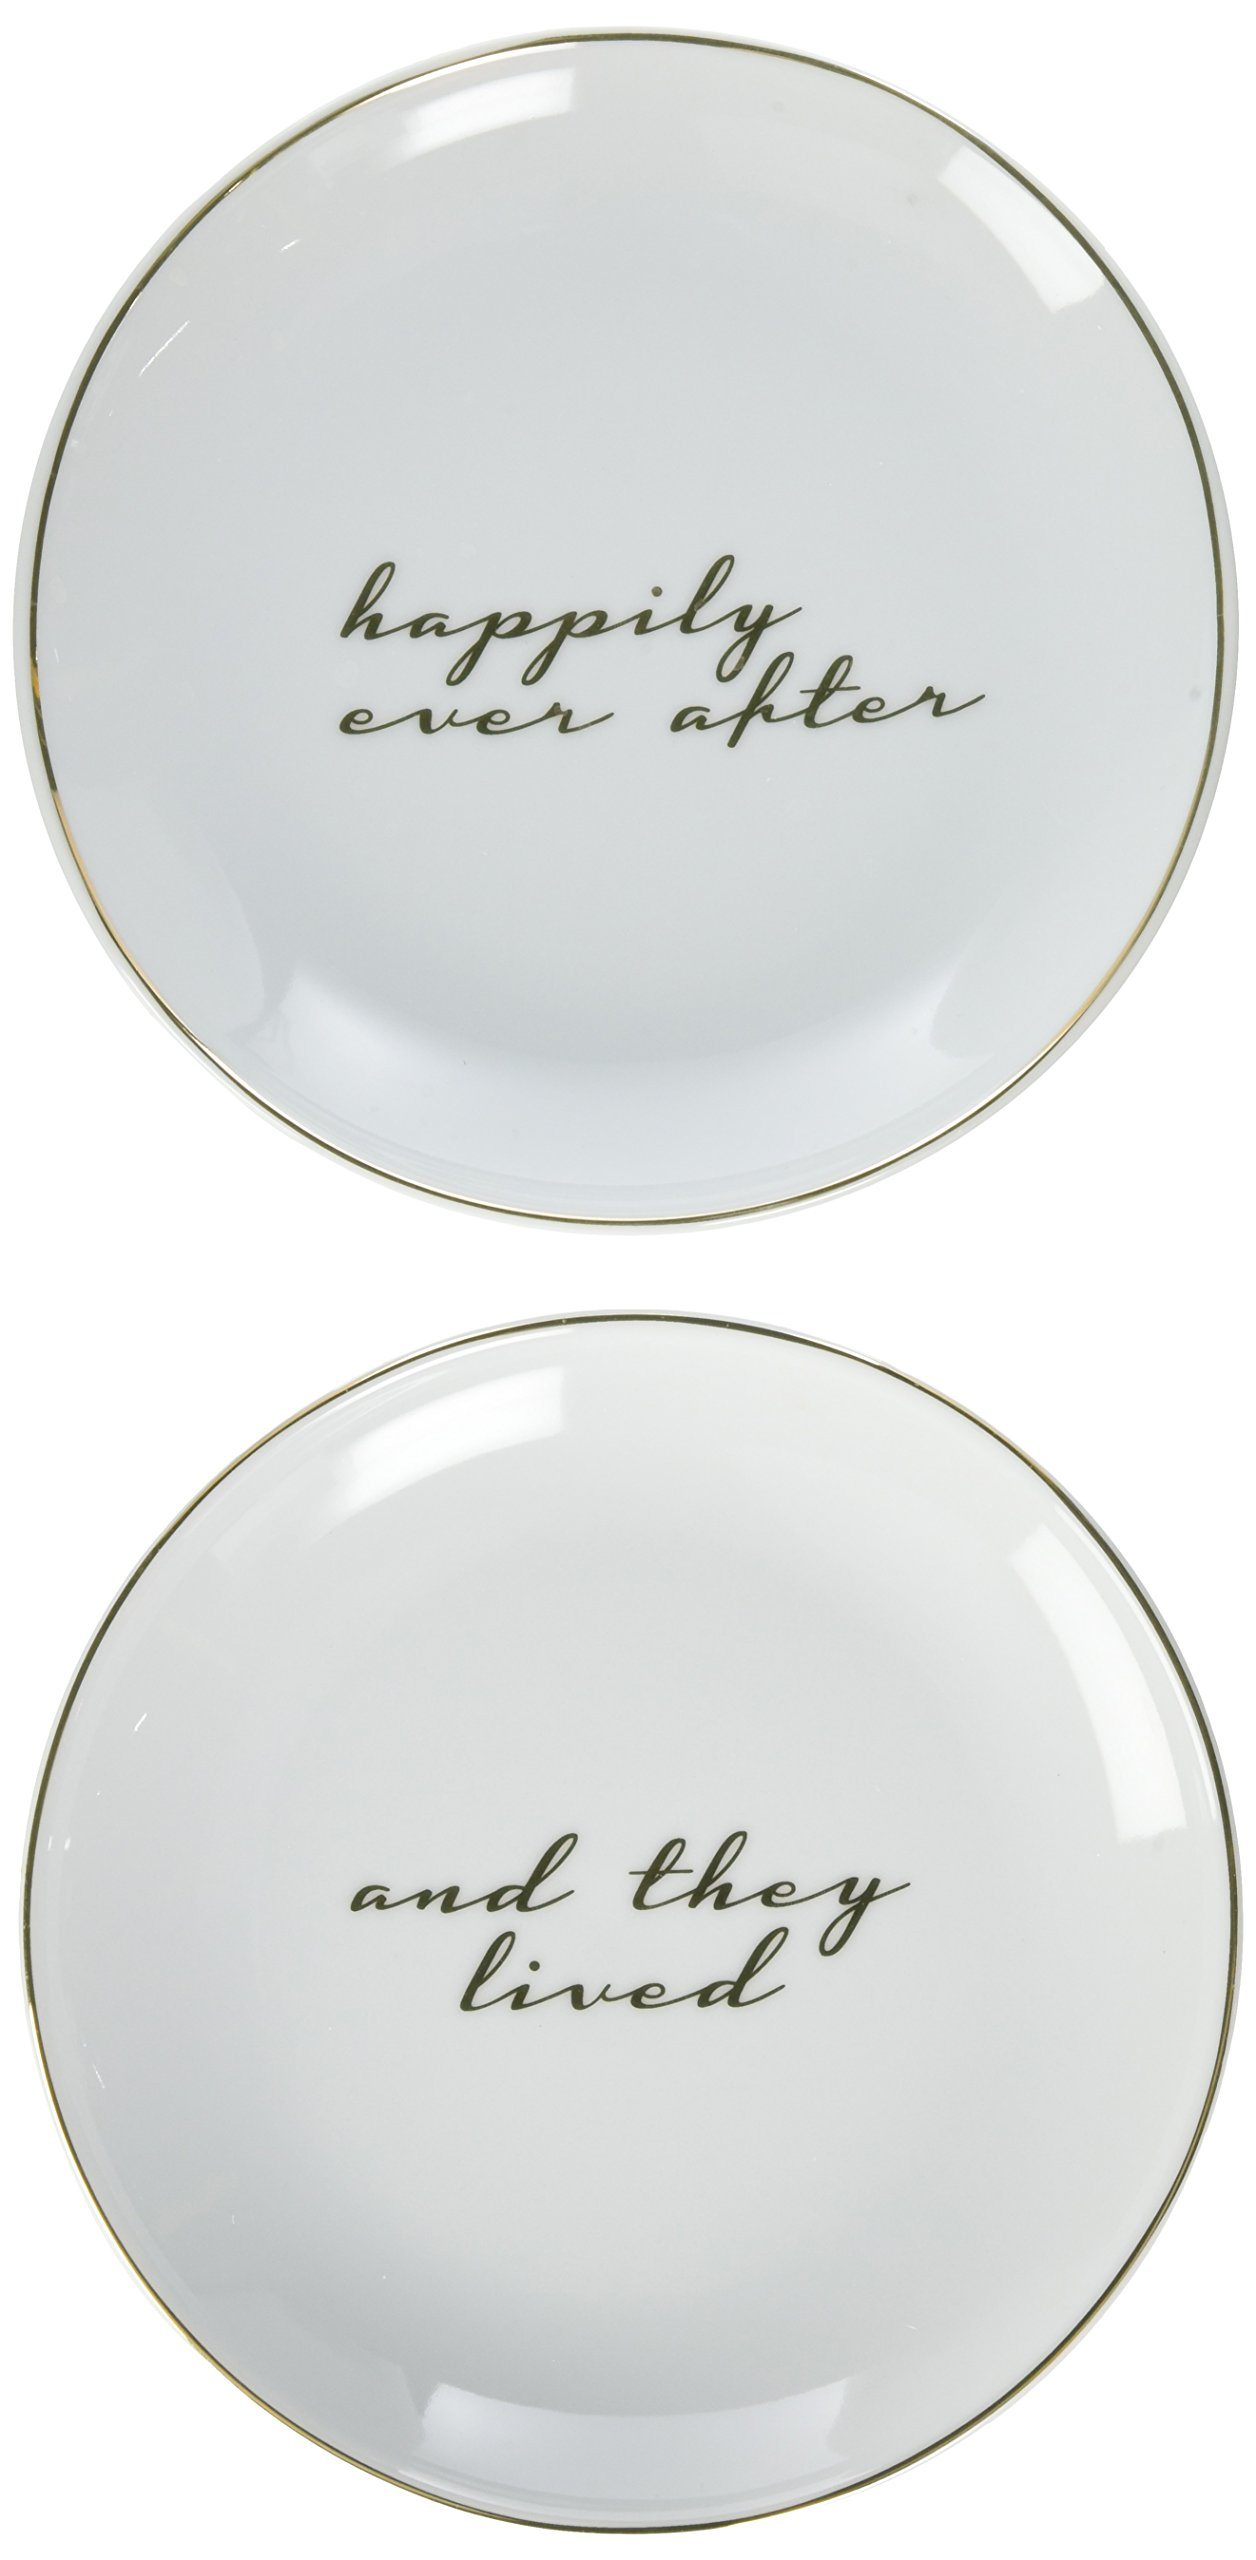 8 Oak Lane EC093LIV and They Lived Happily Ever After Porcelain Dessert Plate, 7'', White